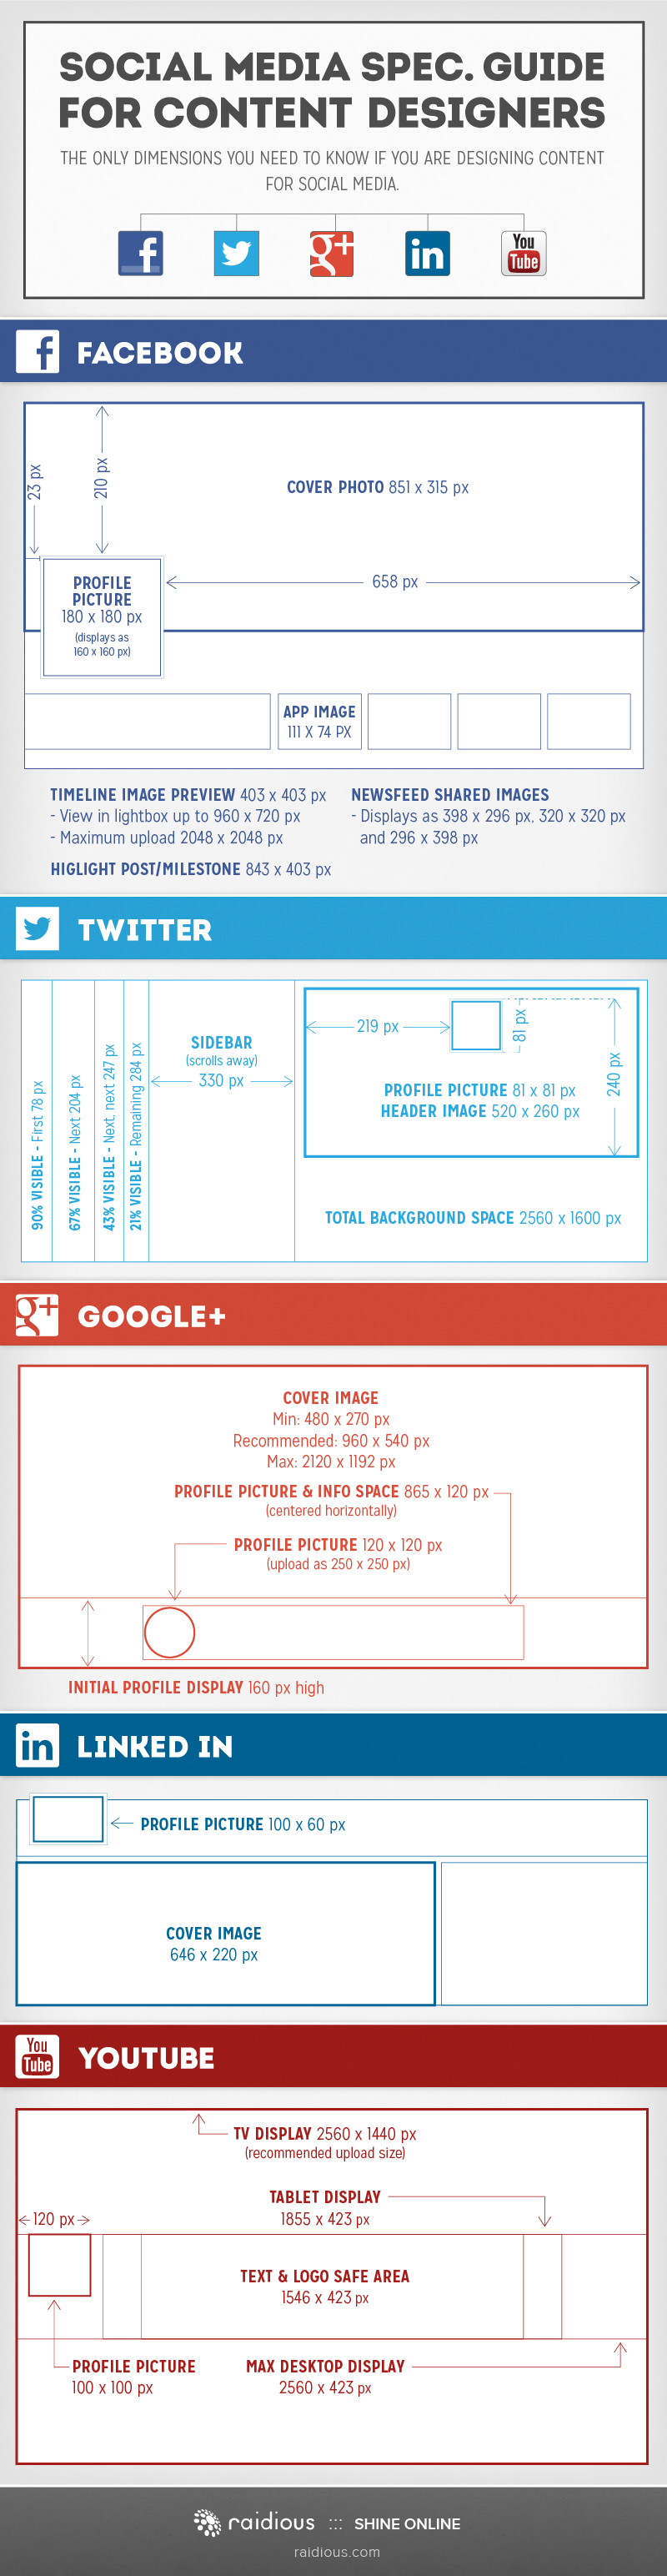 Specification Guide For Social Networking Sites [Infographic]